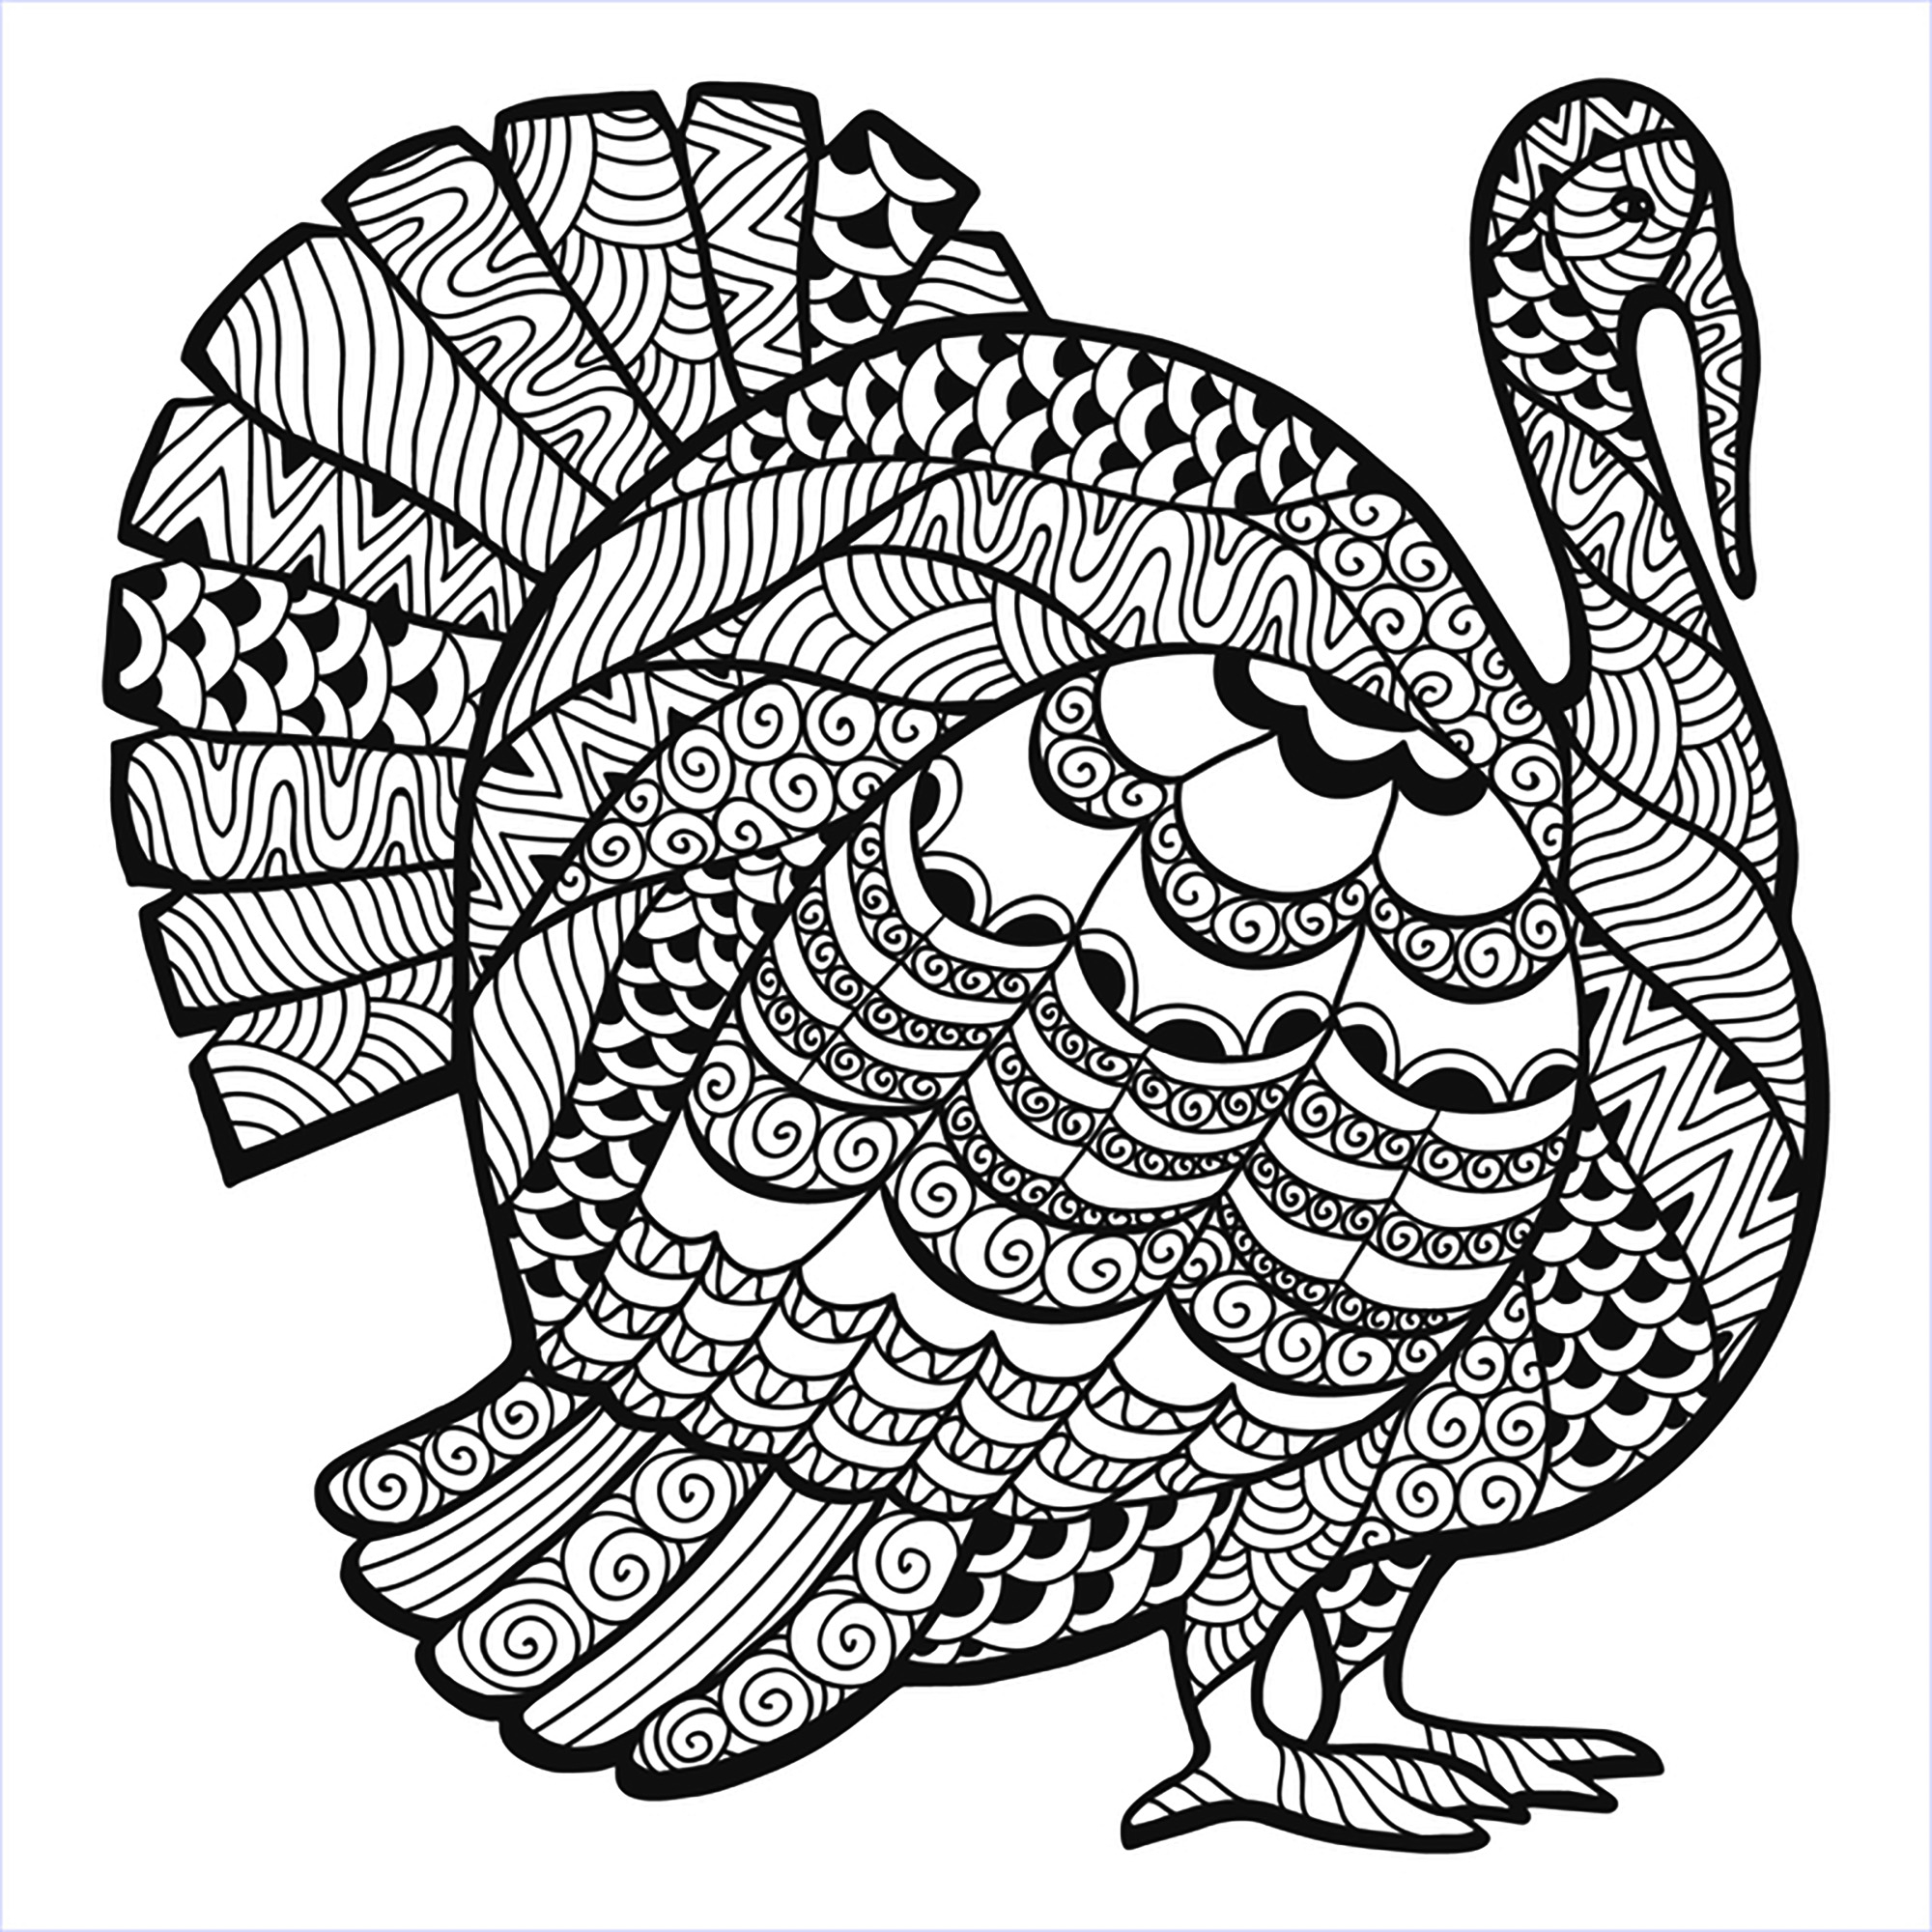 coloring book ~ Coloring Pages For Children Thanksgiving Free To Color Kids  Page Printable Thanksgiving Coloring Page For Kids. A Easter Bunny  Printable Coloring Page For Kids. Coloring Page For Kids To   2000x2000